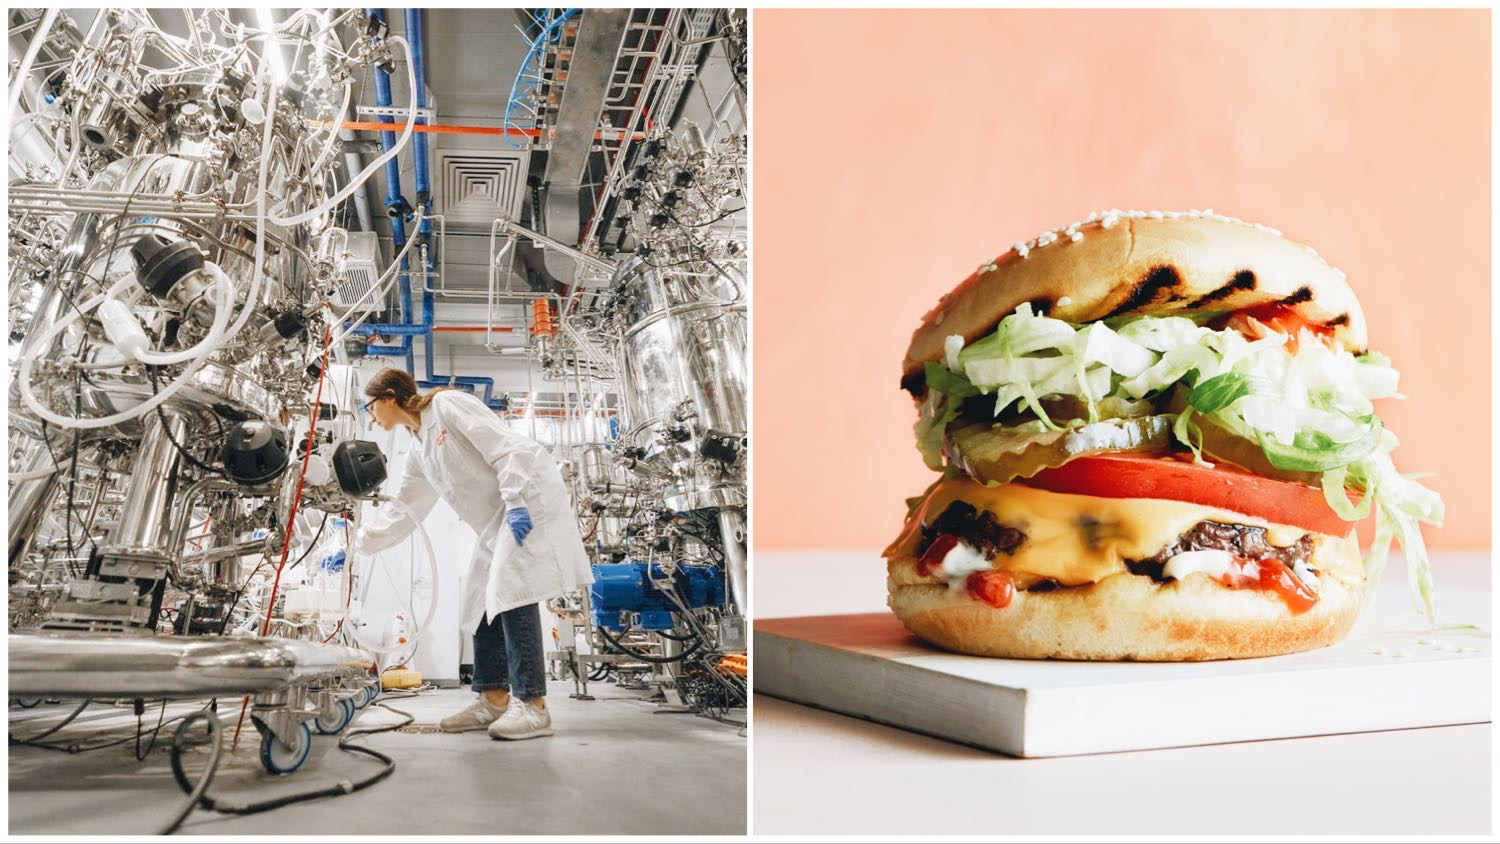 Split of a lab environment (left) and a Future Meat cultured burger (right).